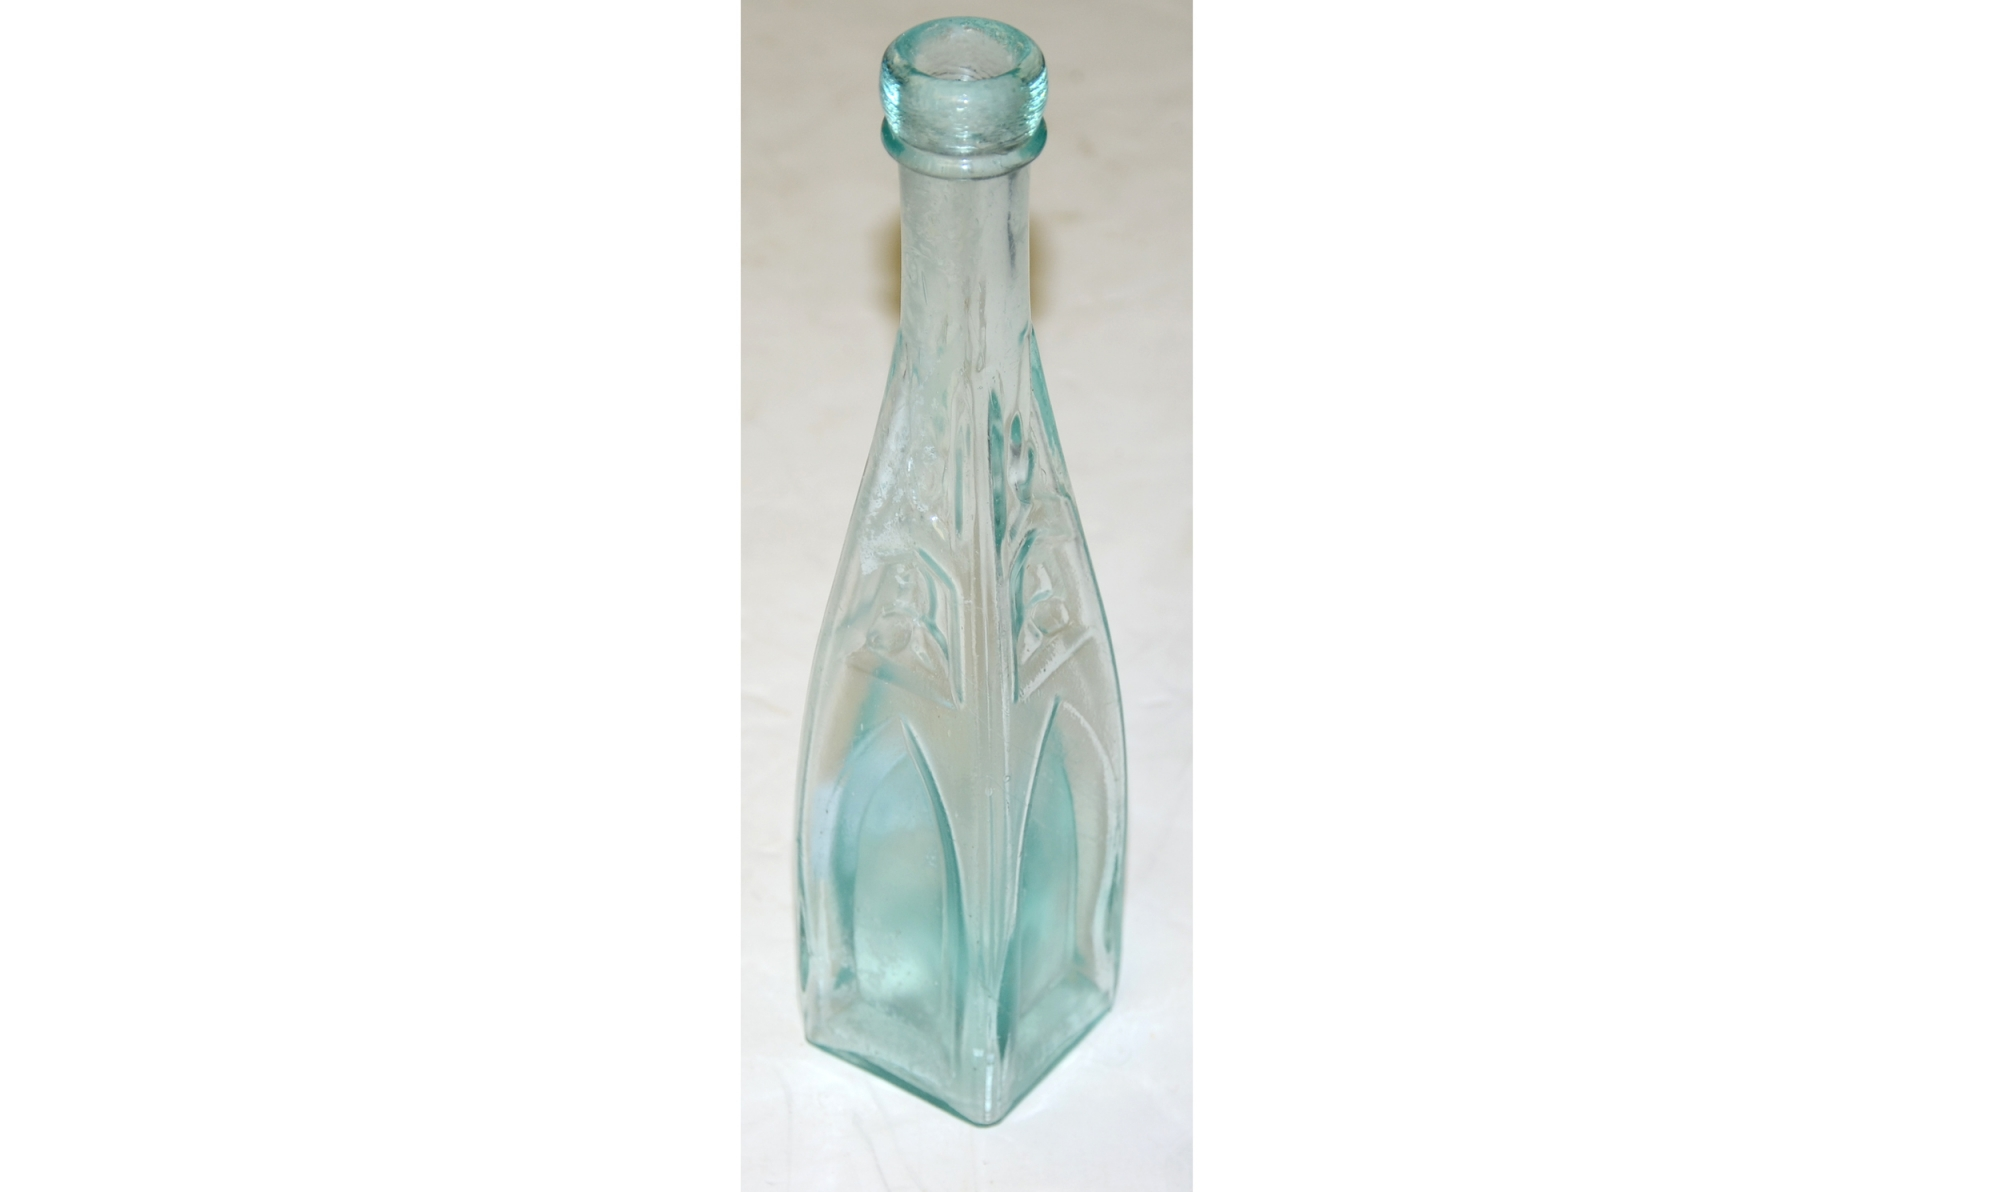 CIVIL WAR ERA CATHEDRAL BOTTLE